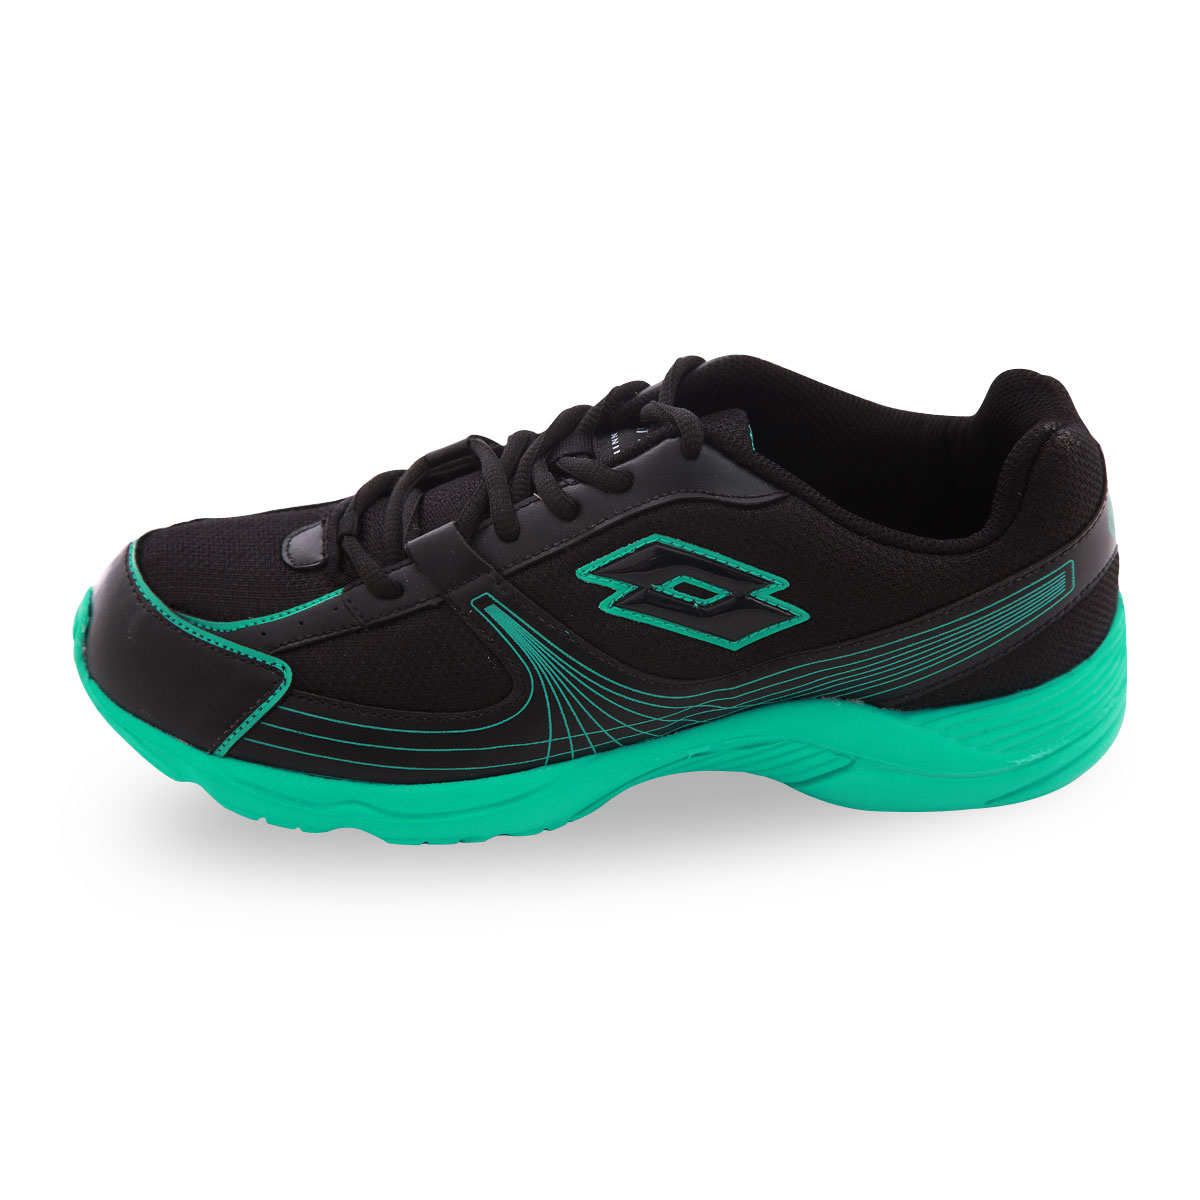 lotto black green casual running shoes buy from